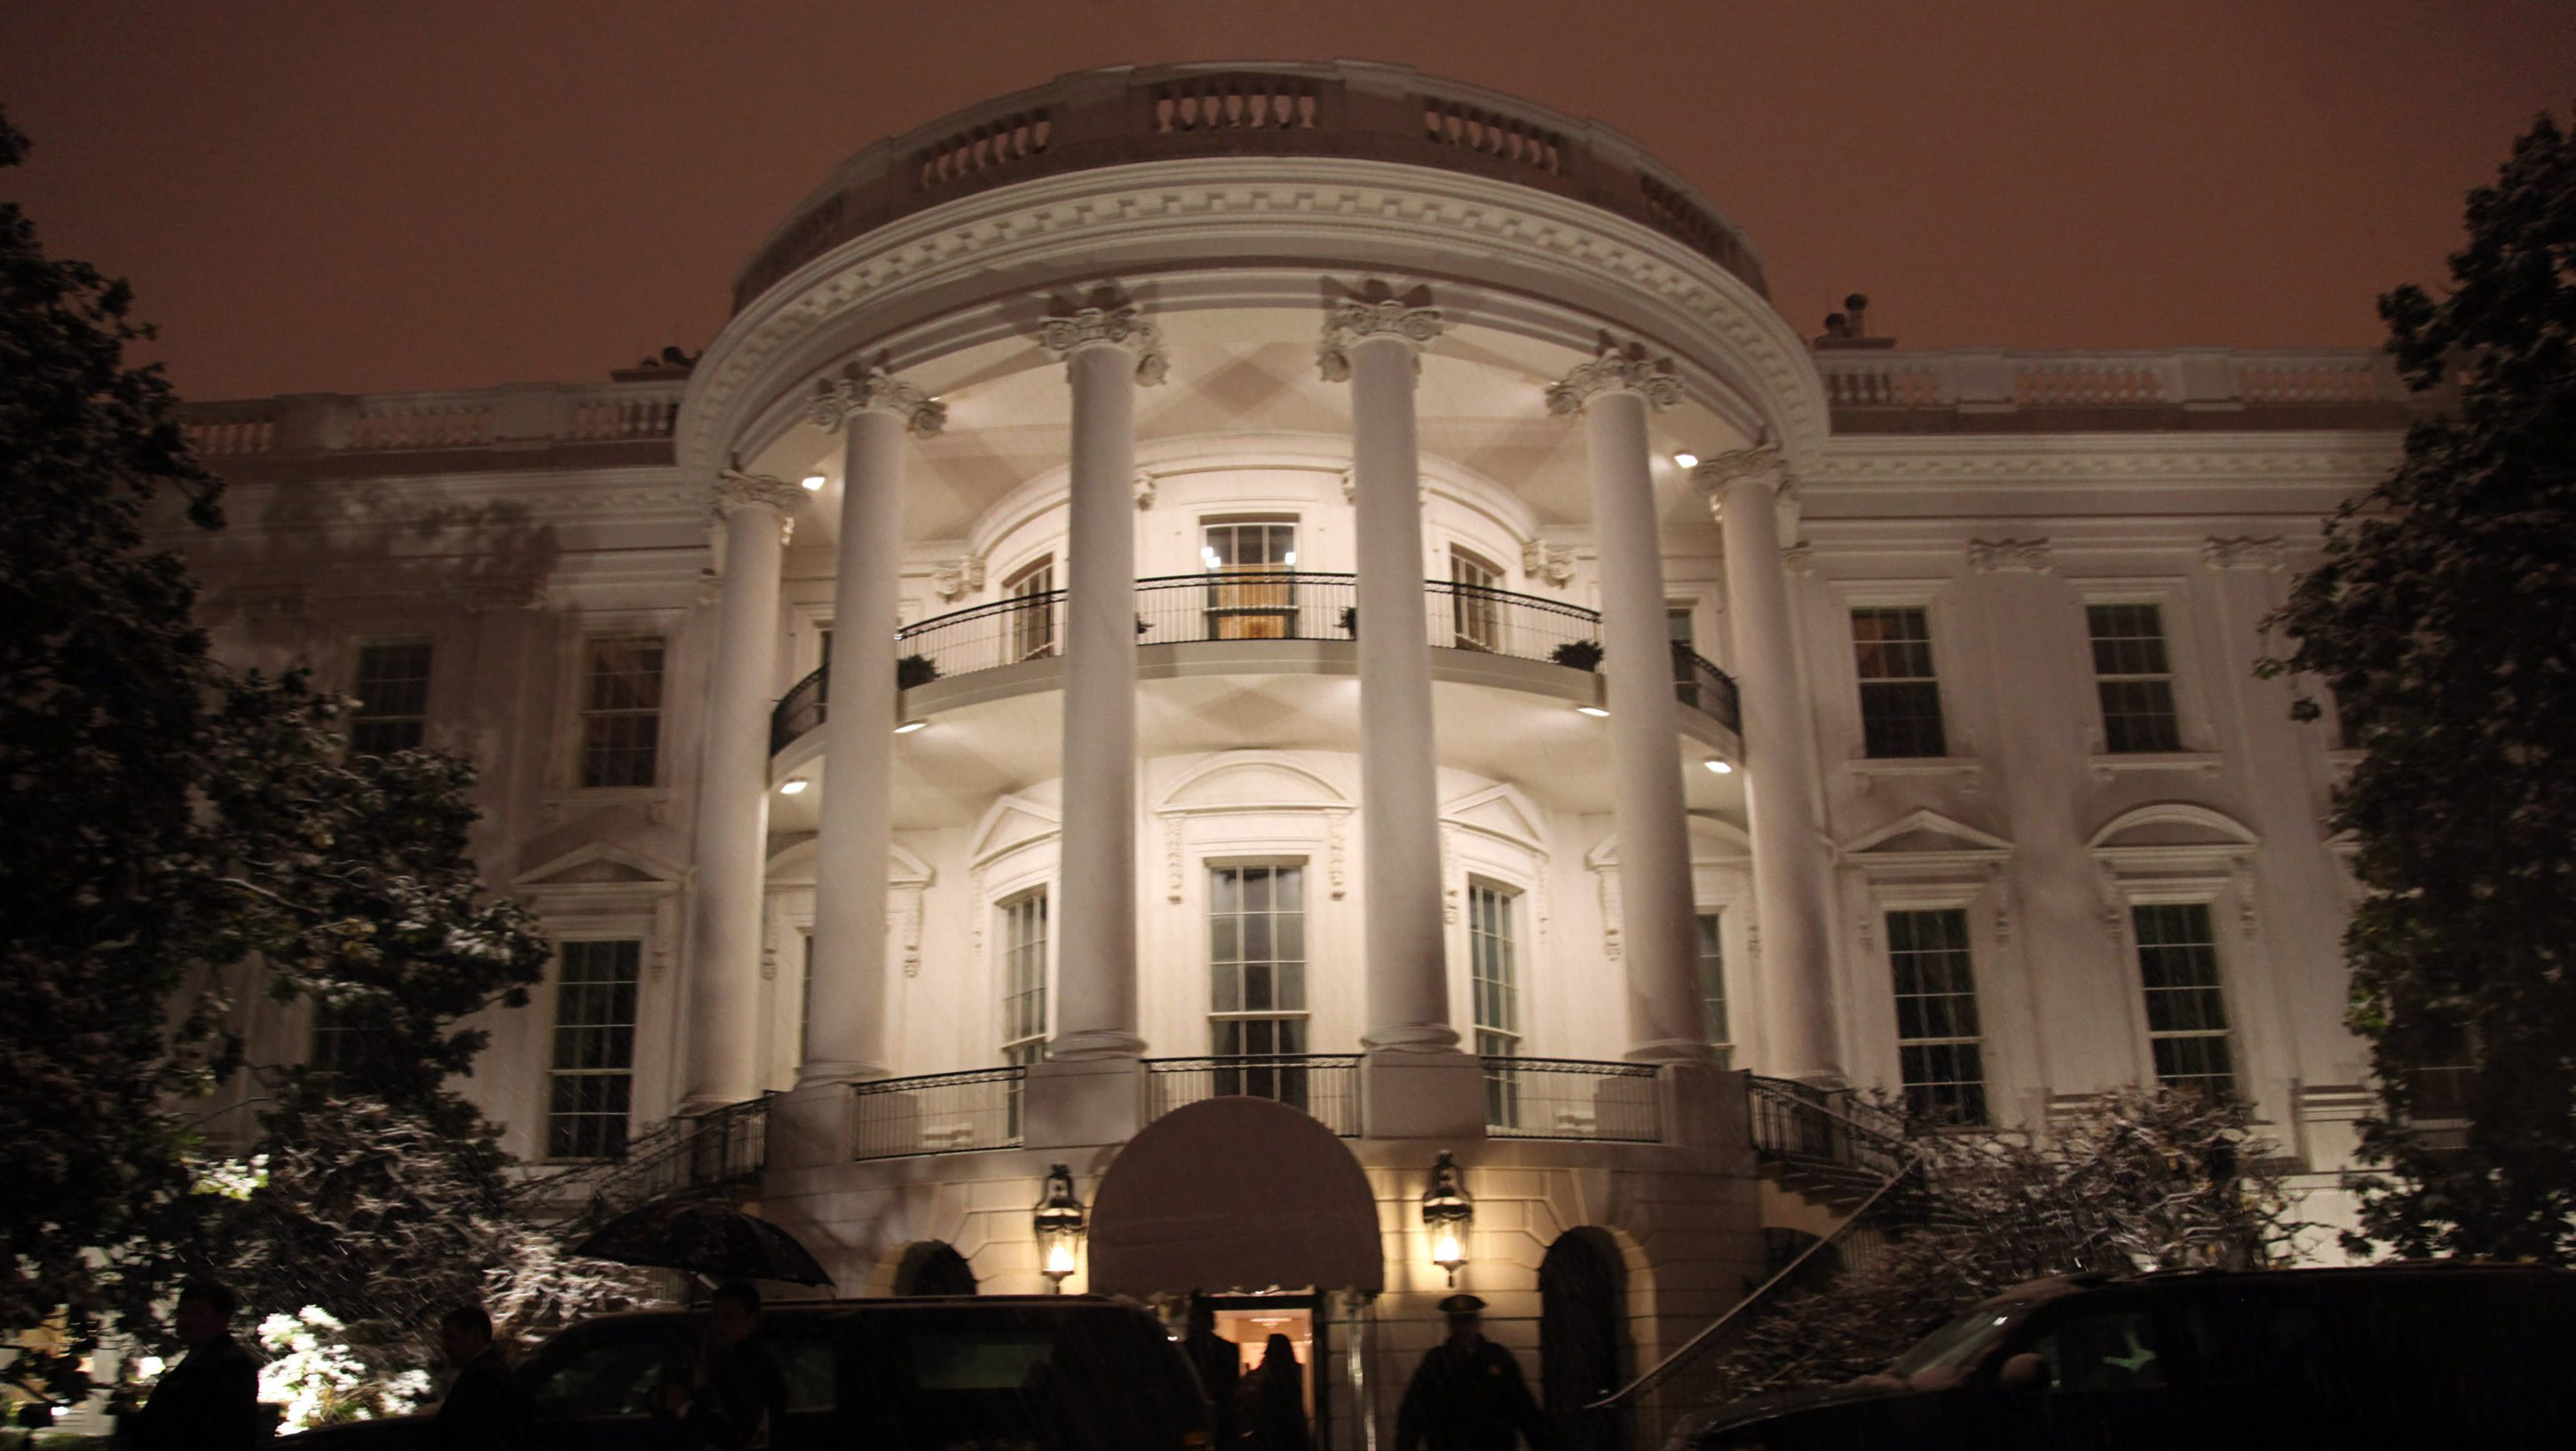 Presidential SUVs are pictured outside the White House in Washington January 26, 2011, after U.S. President Barack Obama's motorcade returned from Andrews Air Force Base. Obama's motorcade was forced to negotiate multiple traffic accidents and heavy snow from Andrews Air Force Base back to the White House as a snow storm hit Washington and forced the grounding of Marine One.     REUTERS/Jason Reed   (UNITED STATES - Tags: POLITICS TRANSPORT ENVIRONMENT) - RTXX4H4